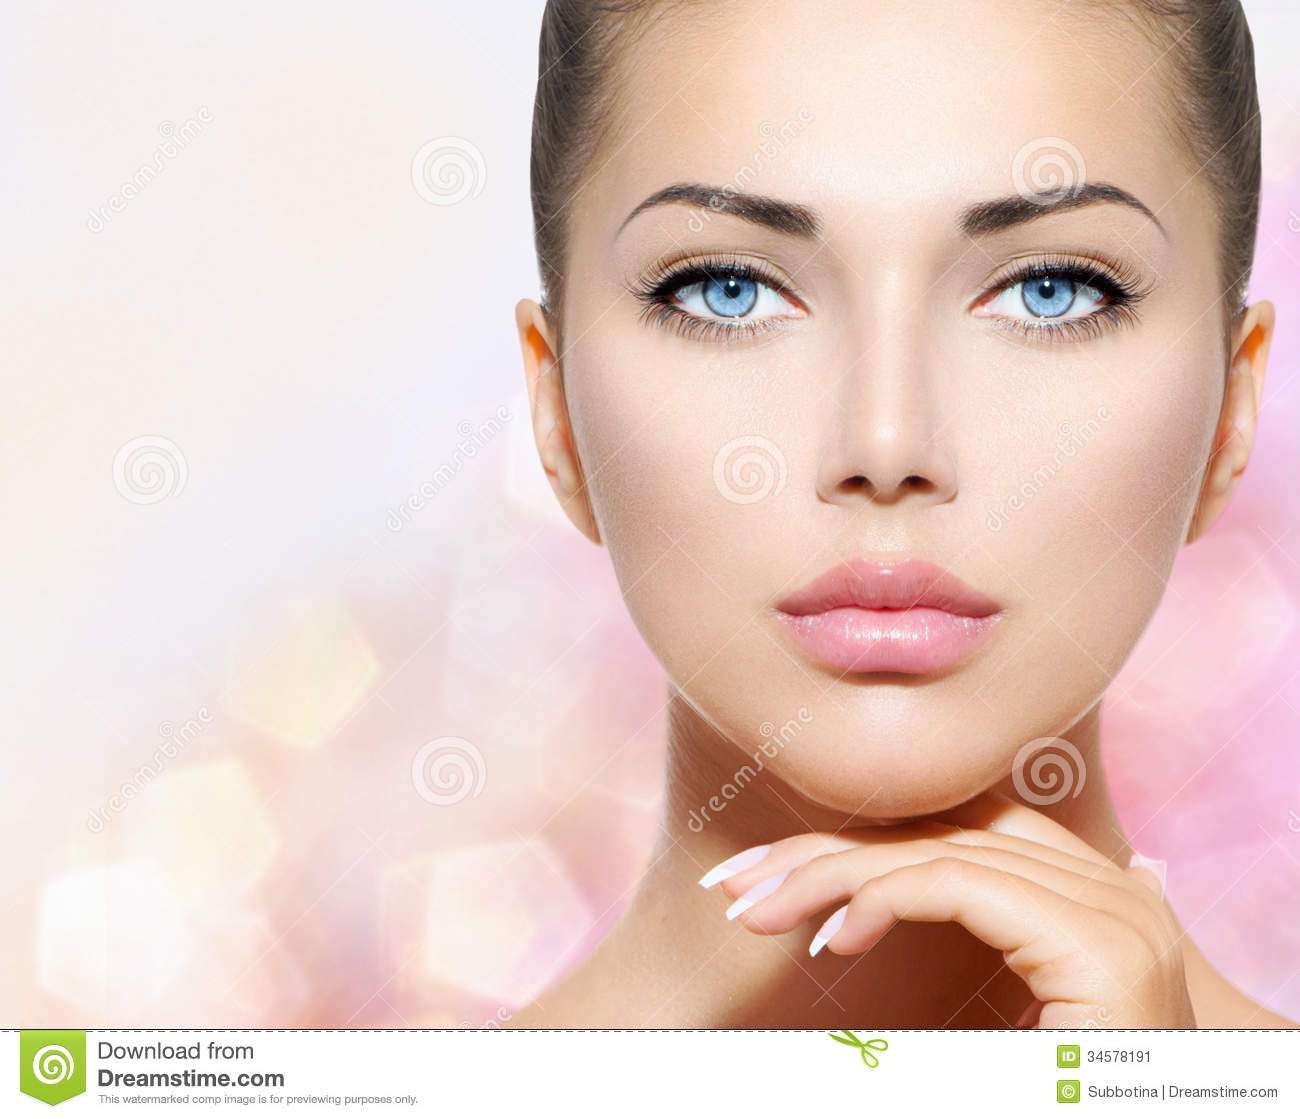 Beauty Portrait Stock Image